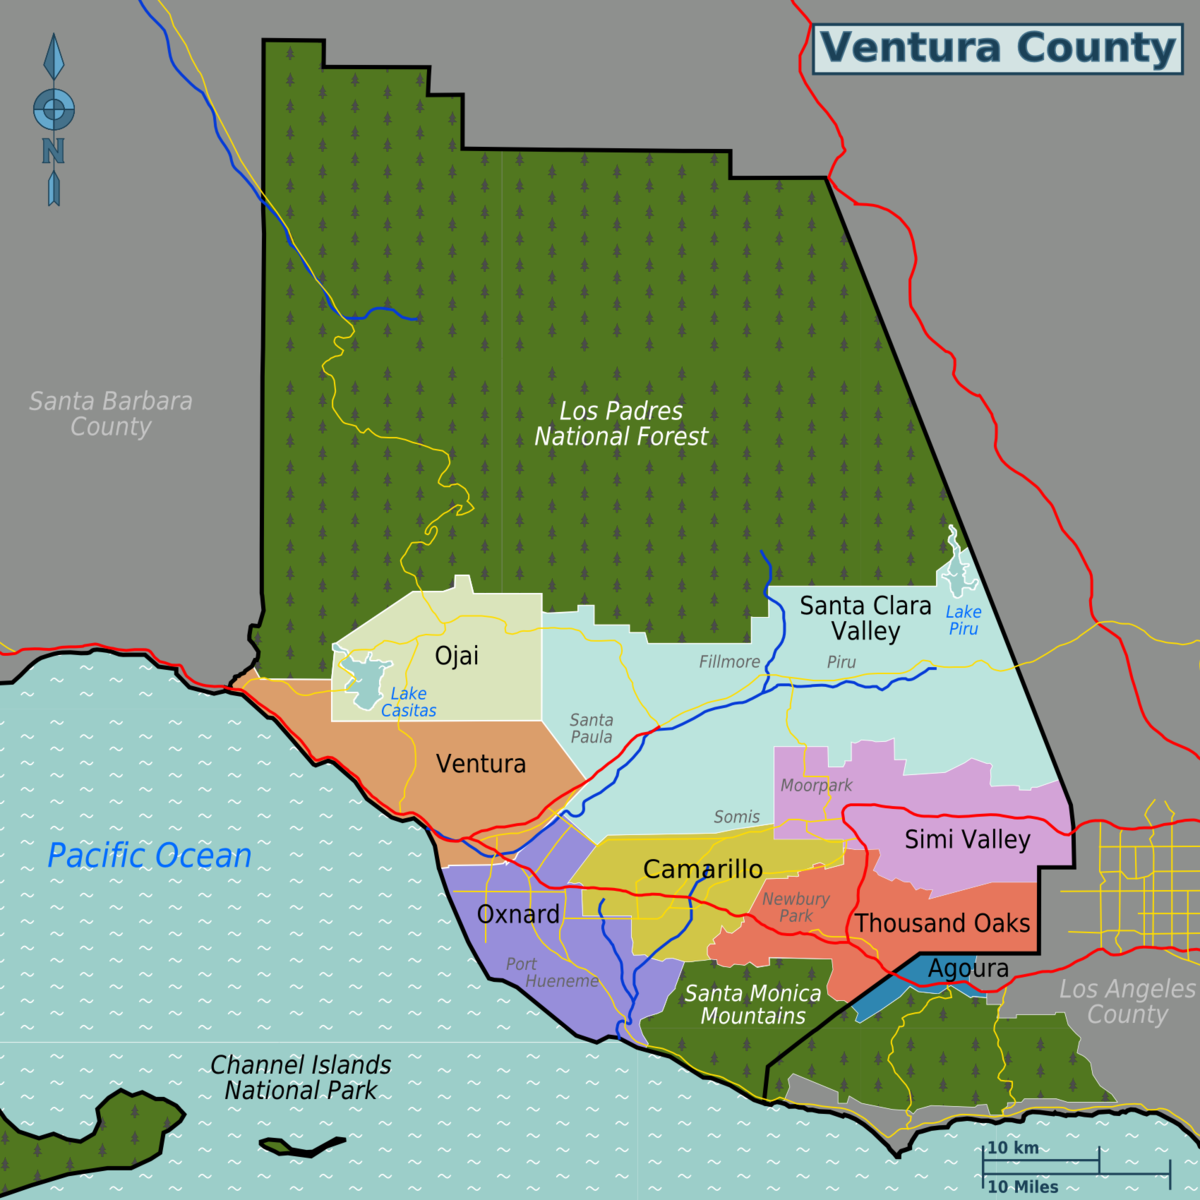 Ventura County – Travel guide at Wikivoyage